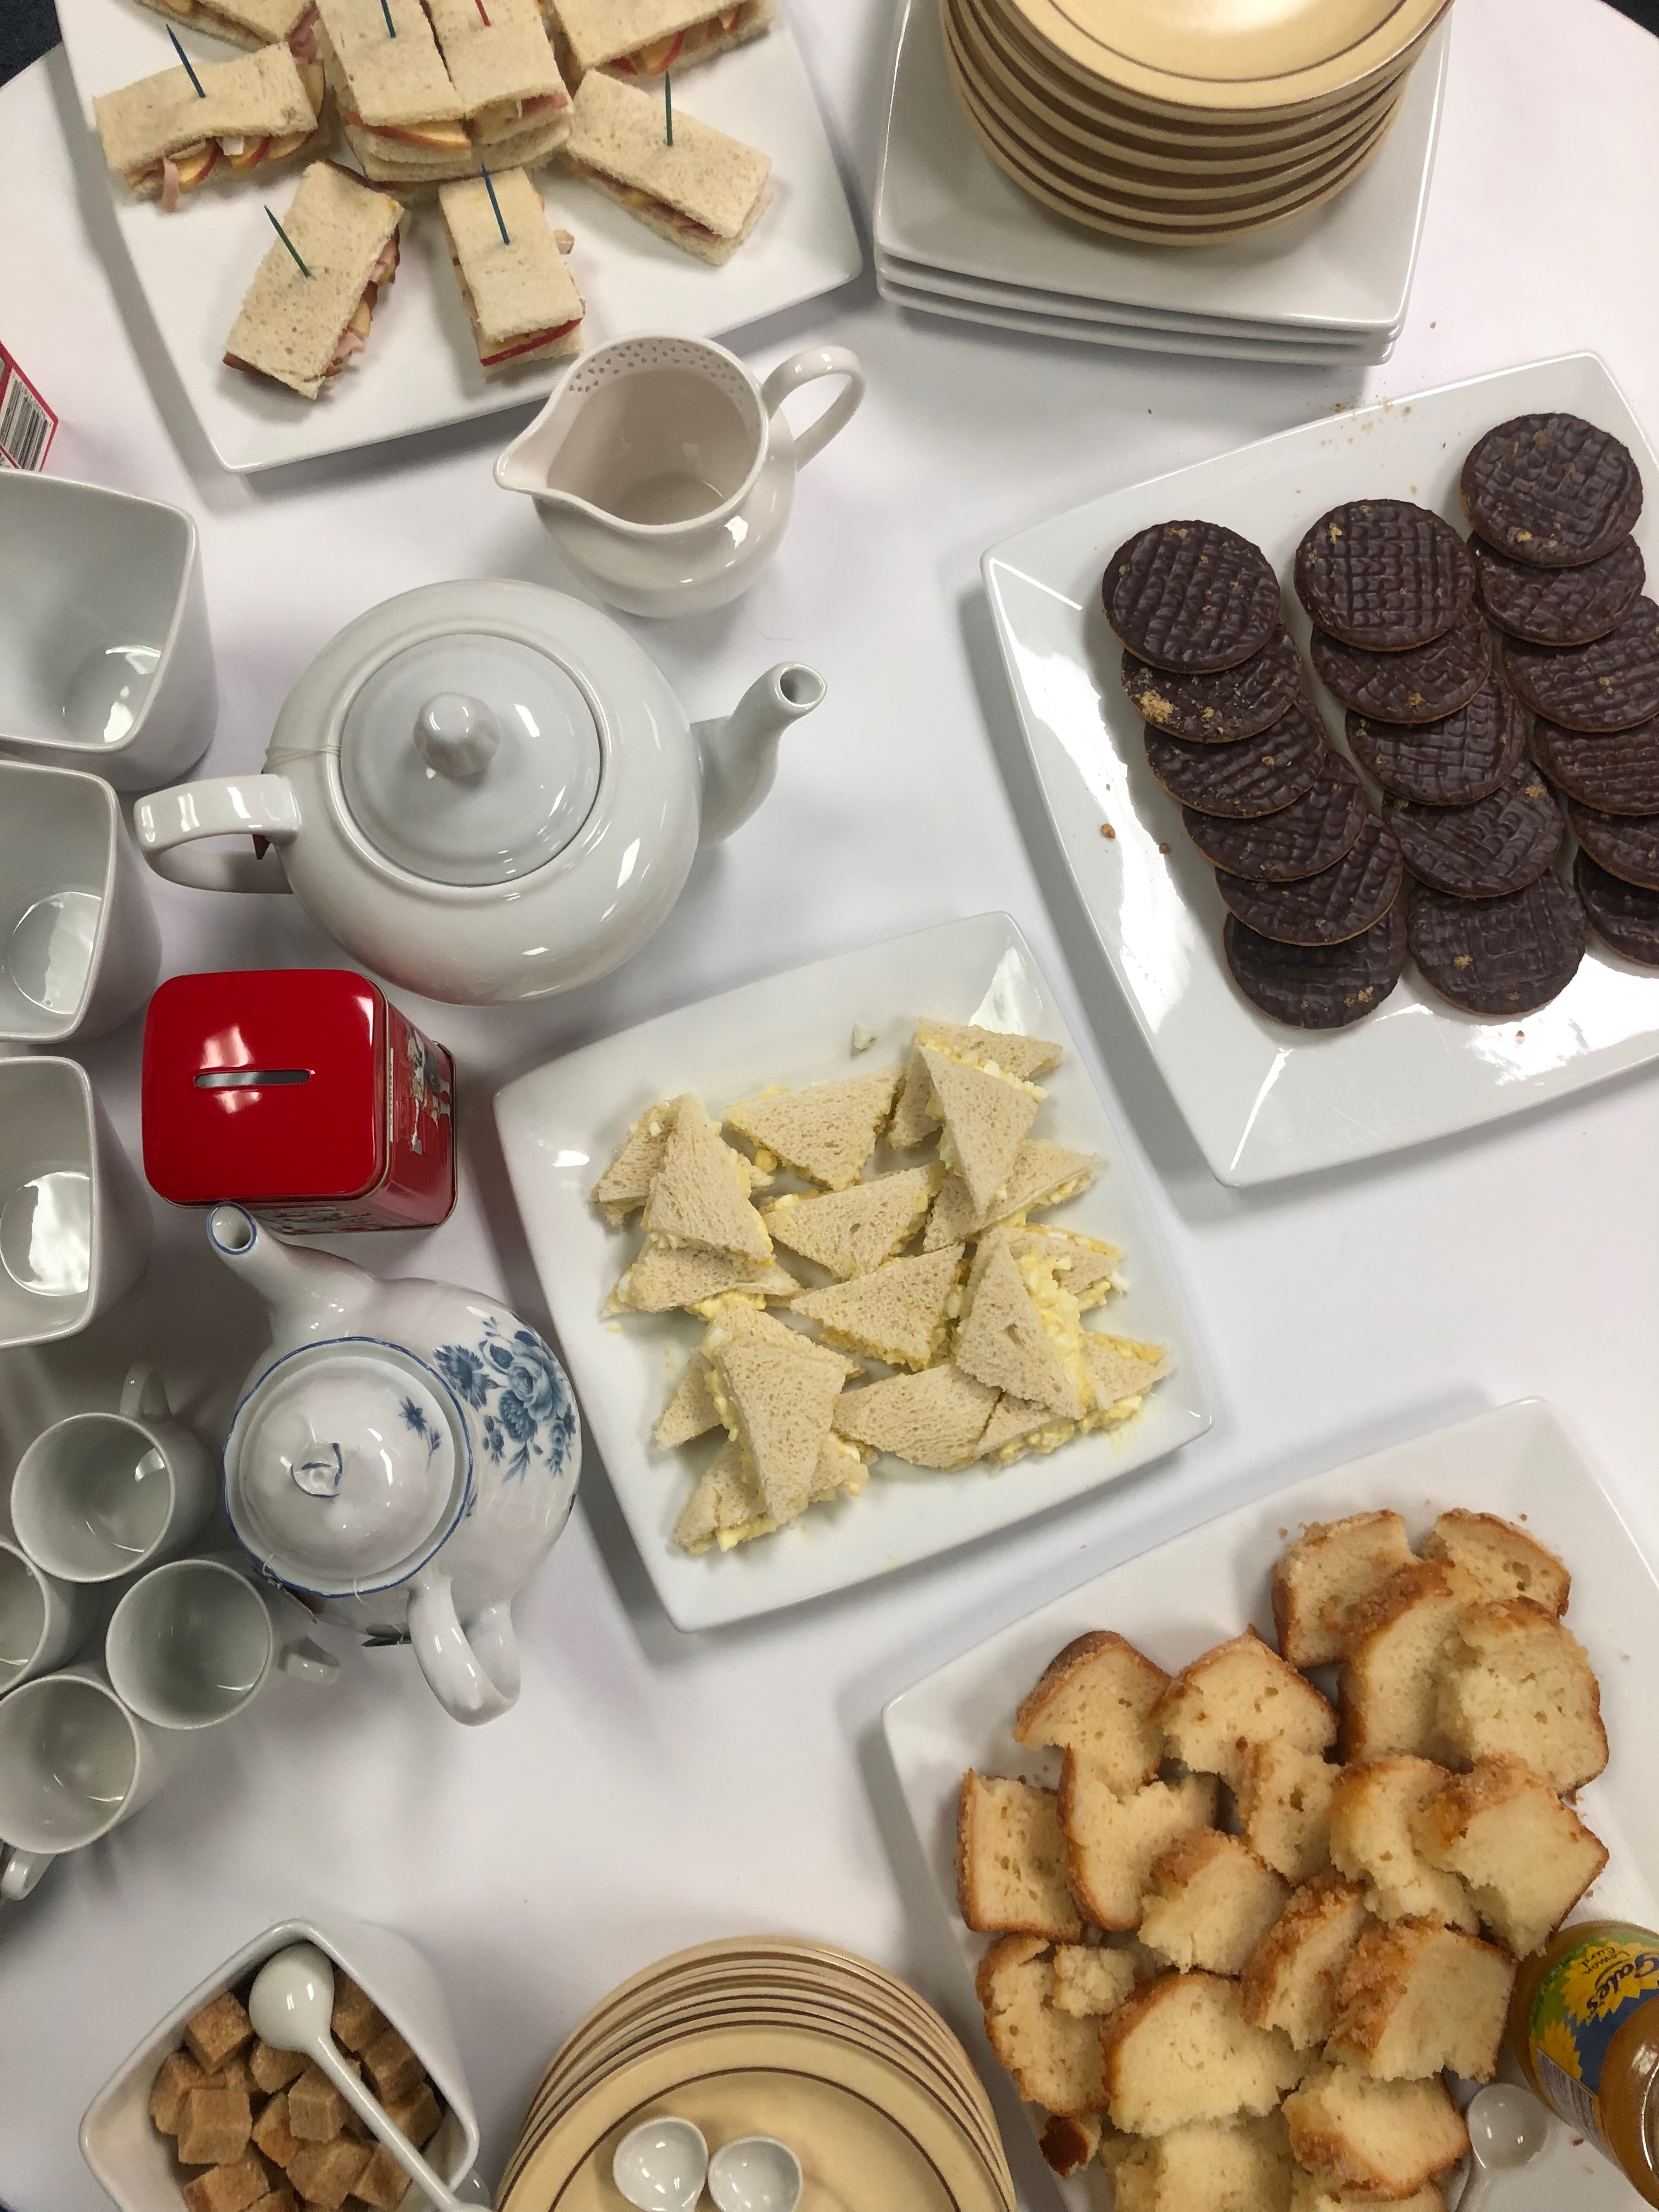 Afternoon Tea: Tea Cups, Tea Pots, Finger Sandwiches, Digestive Biscuits, Sponge Cake, and Lemon Curd